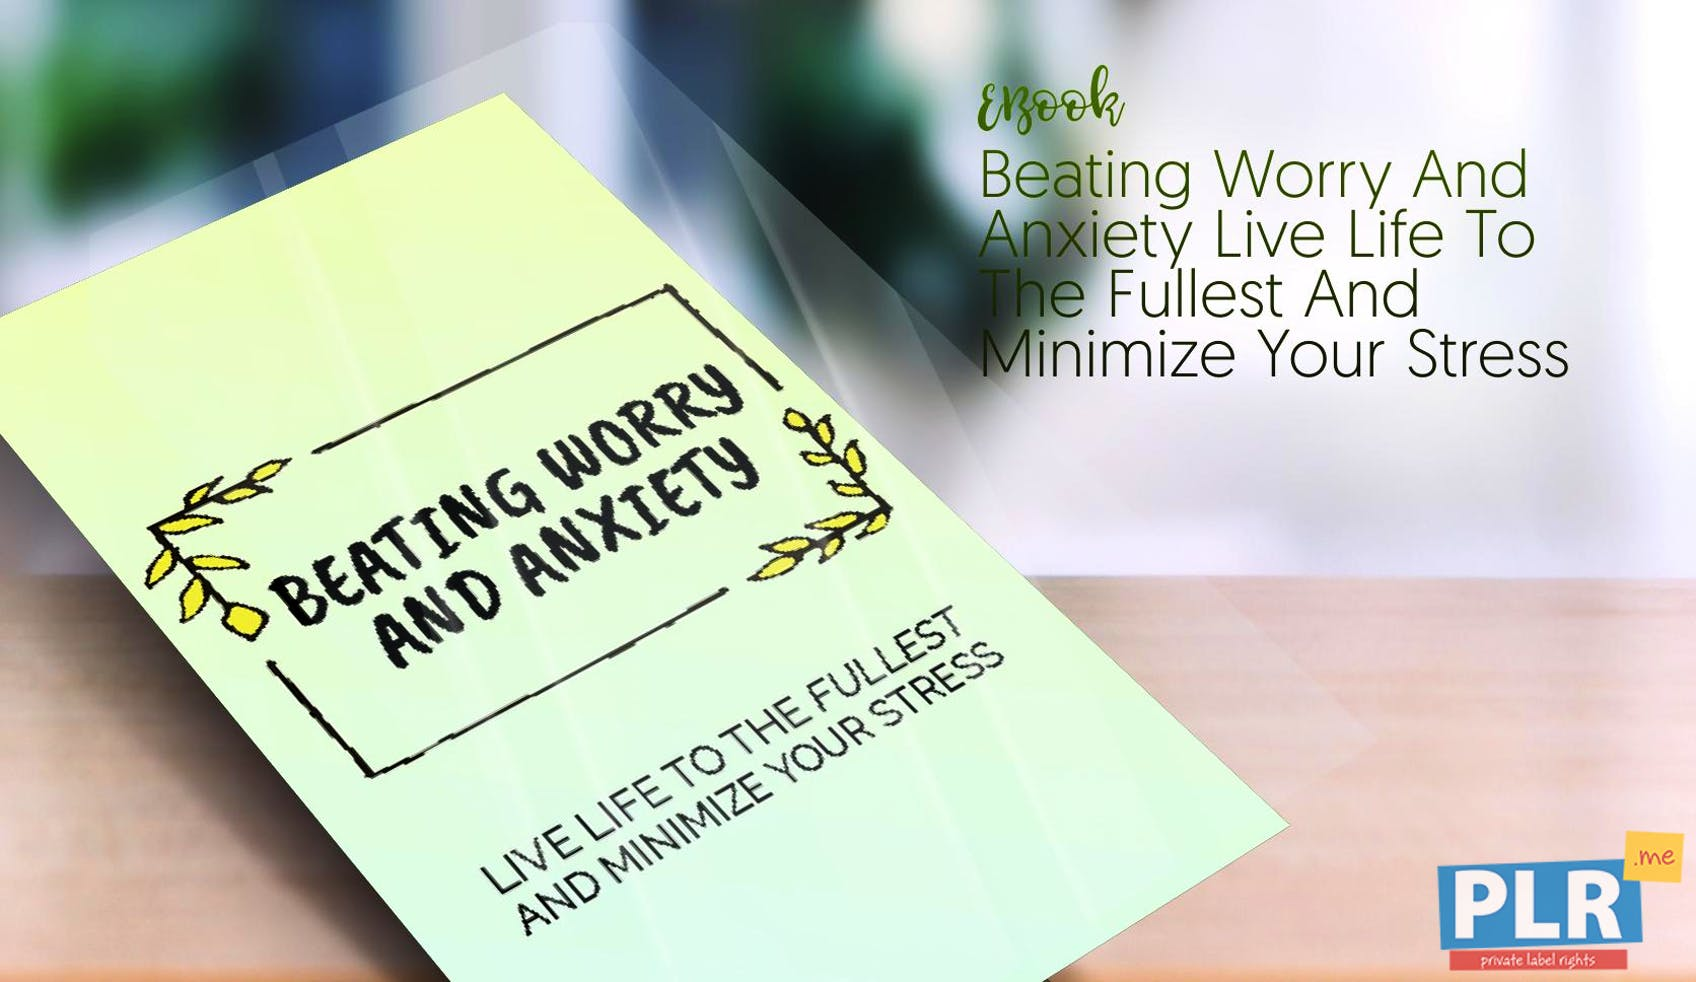 Beating Worry And Anxiety Live Life To The Fullest And Minimize Your Stress